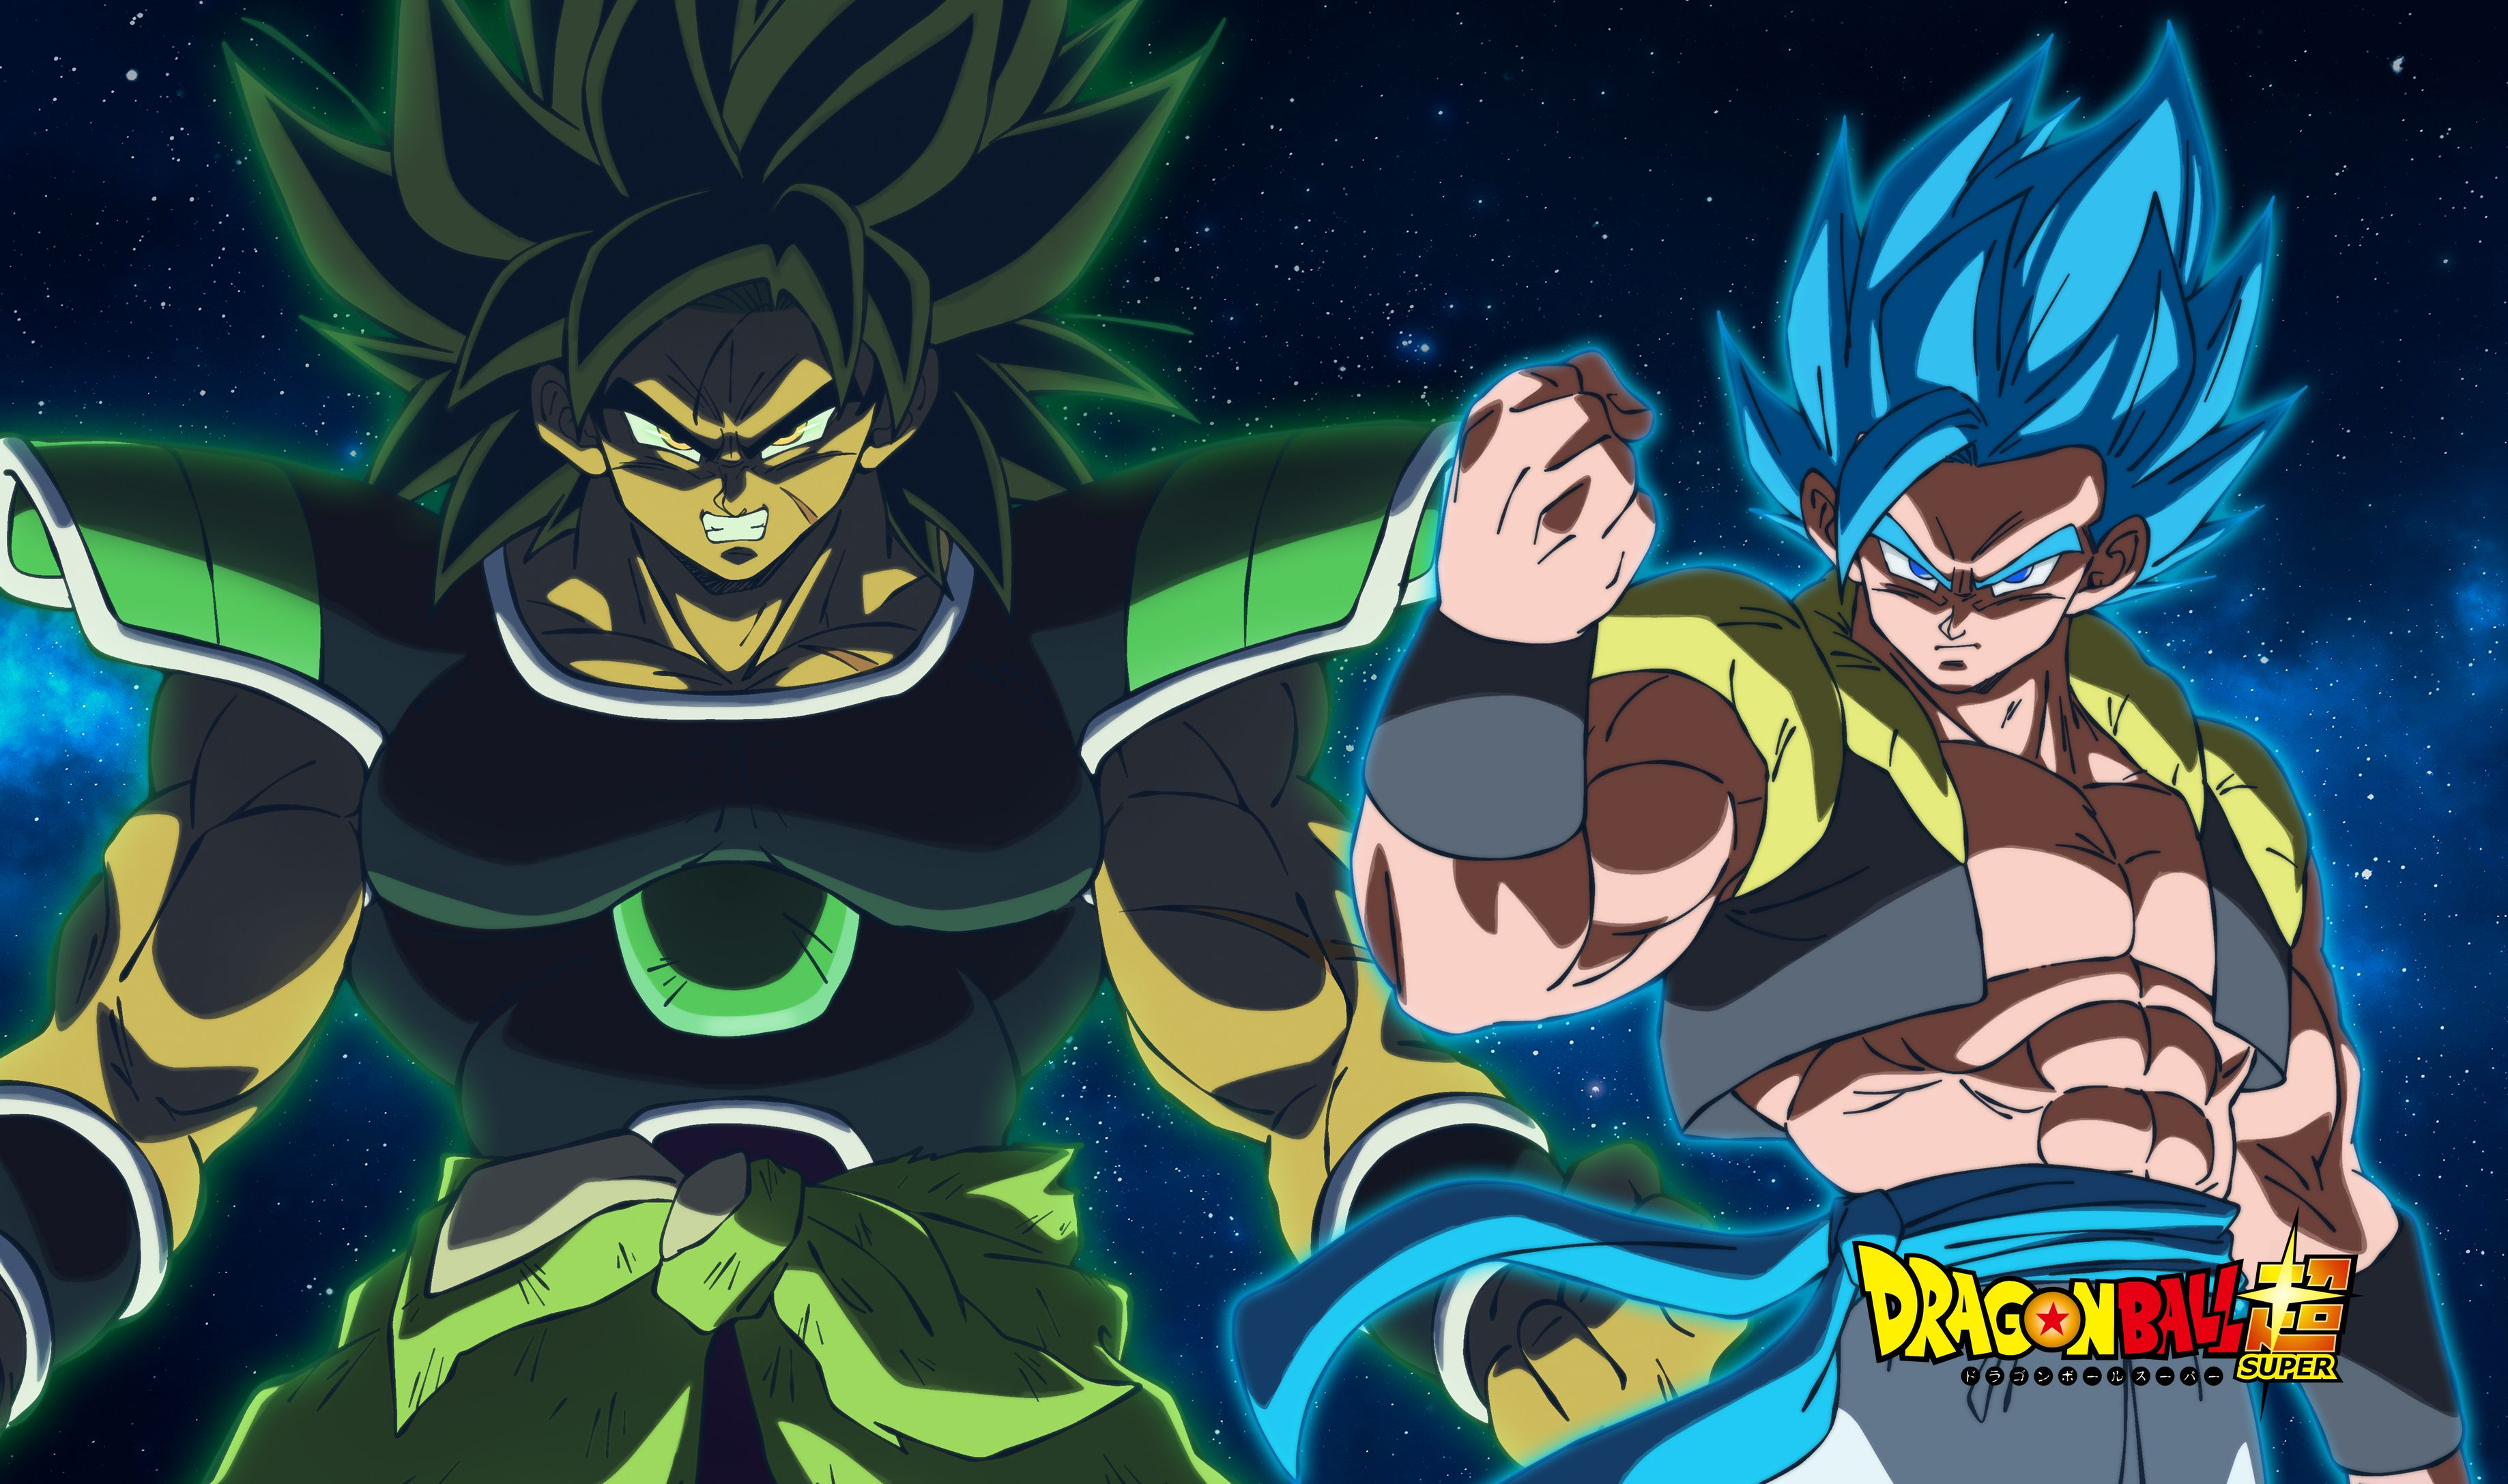 Dragon Ball Super Broly Wallpapers Top Free Dragon Ball Super Broly Backgrounds Wallpaperaccess